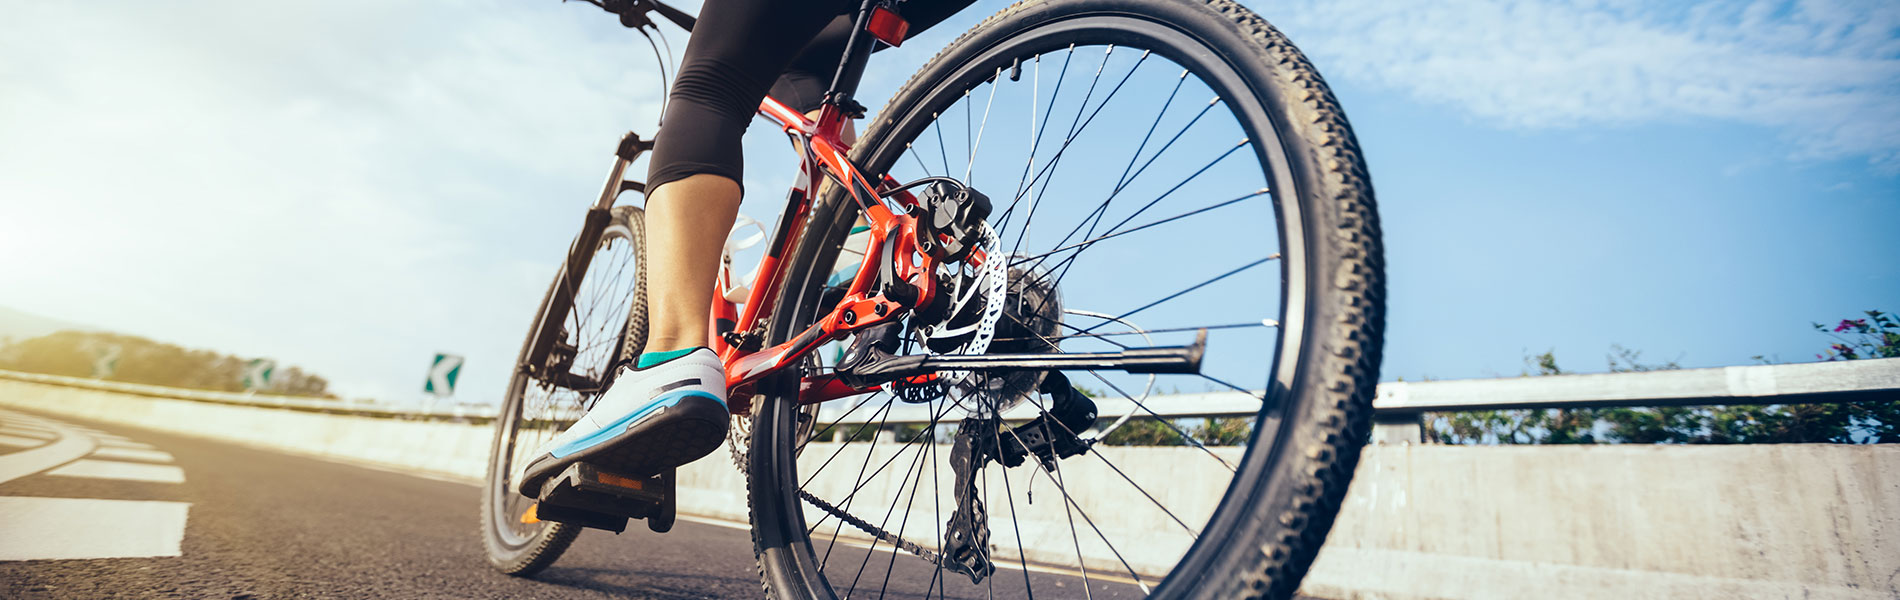 Central Florida Bicycle Accident Attorney